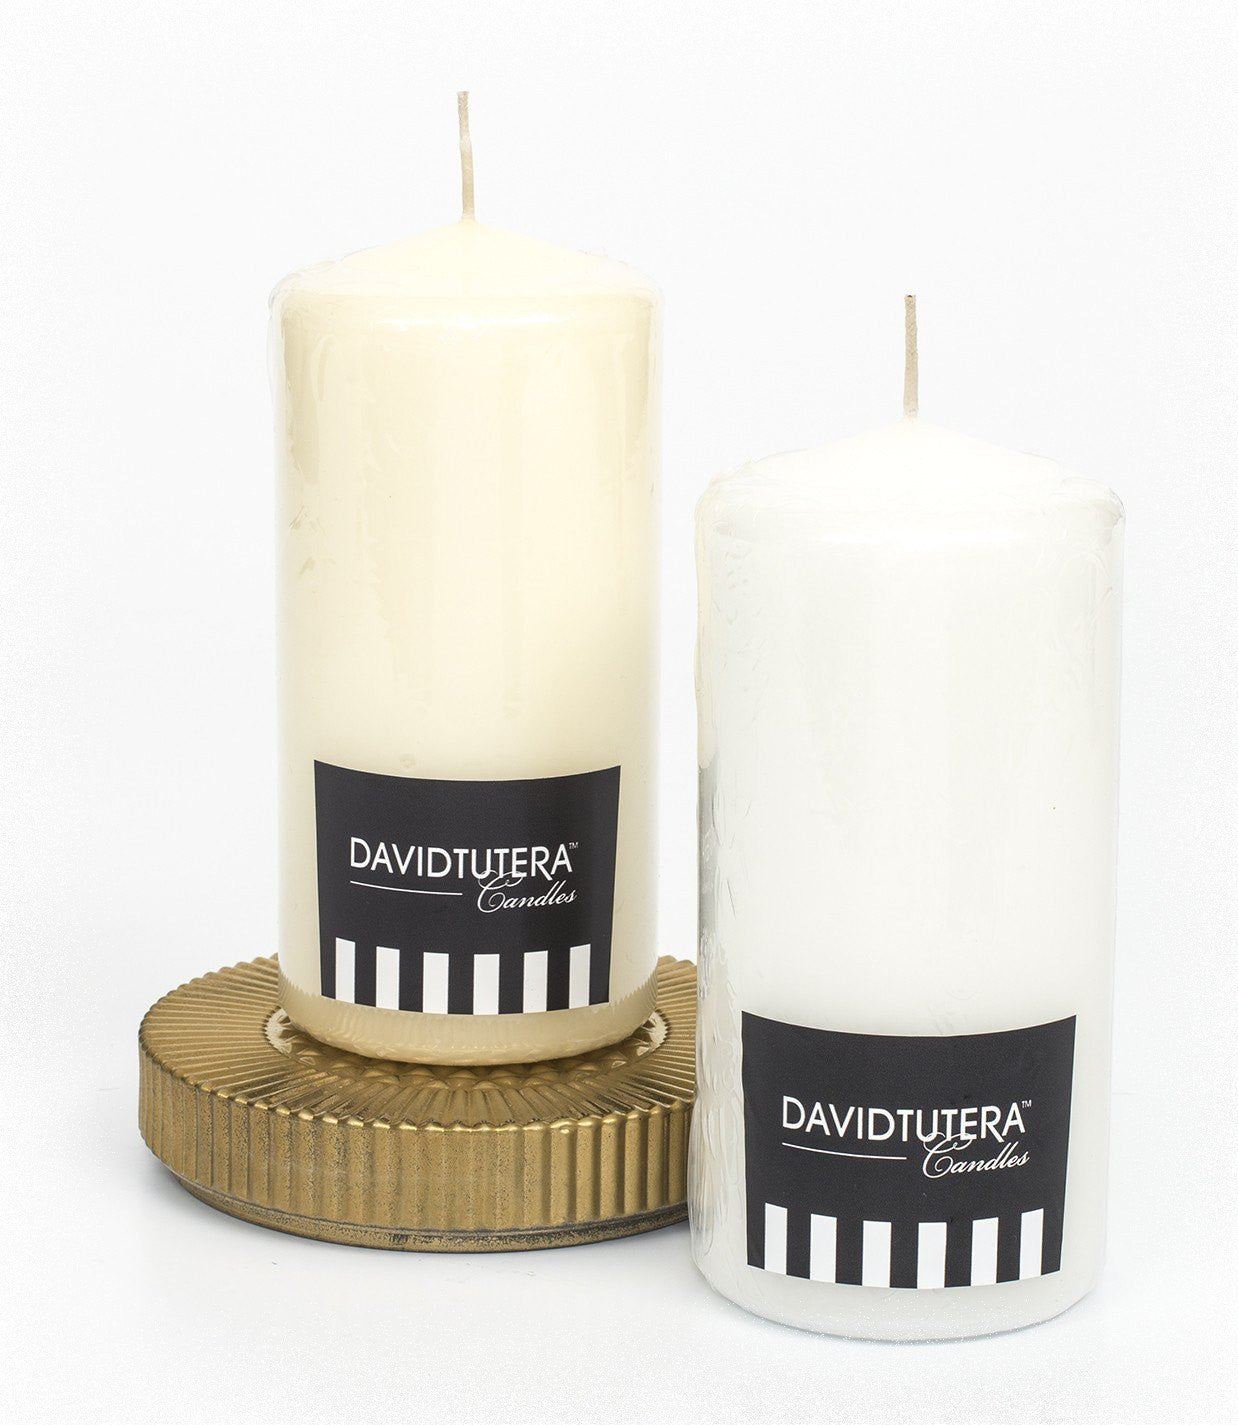 David Tutera Pillar Candles 6inch 6 pack - WeddingCandles.com